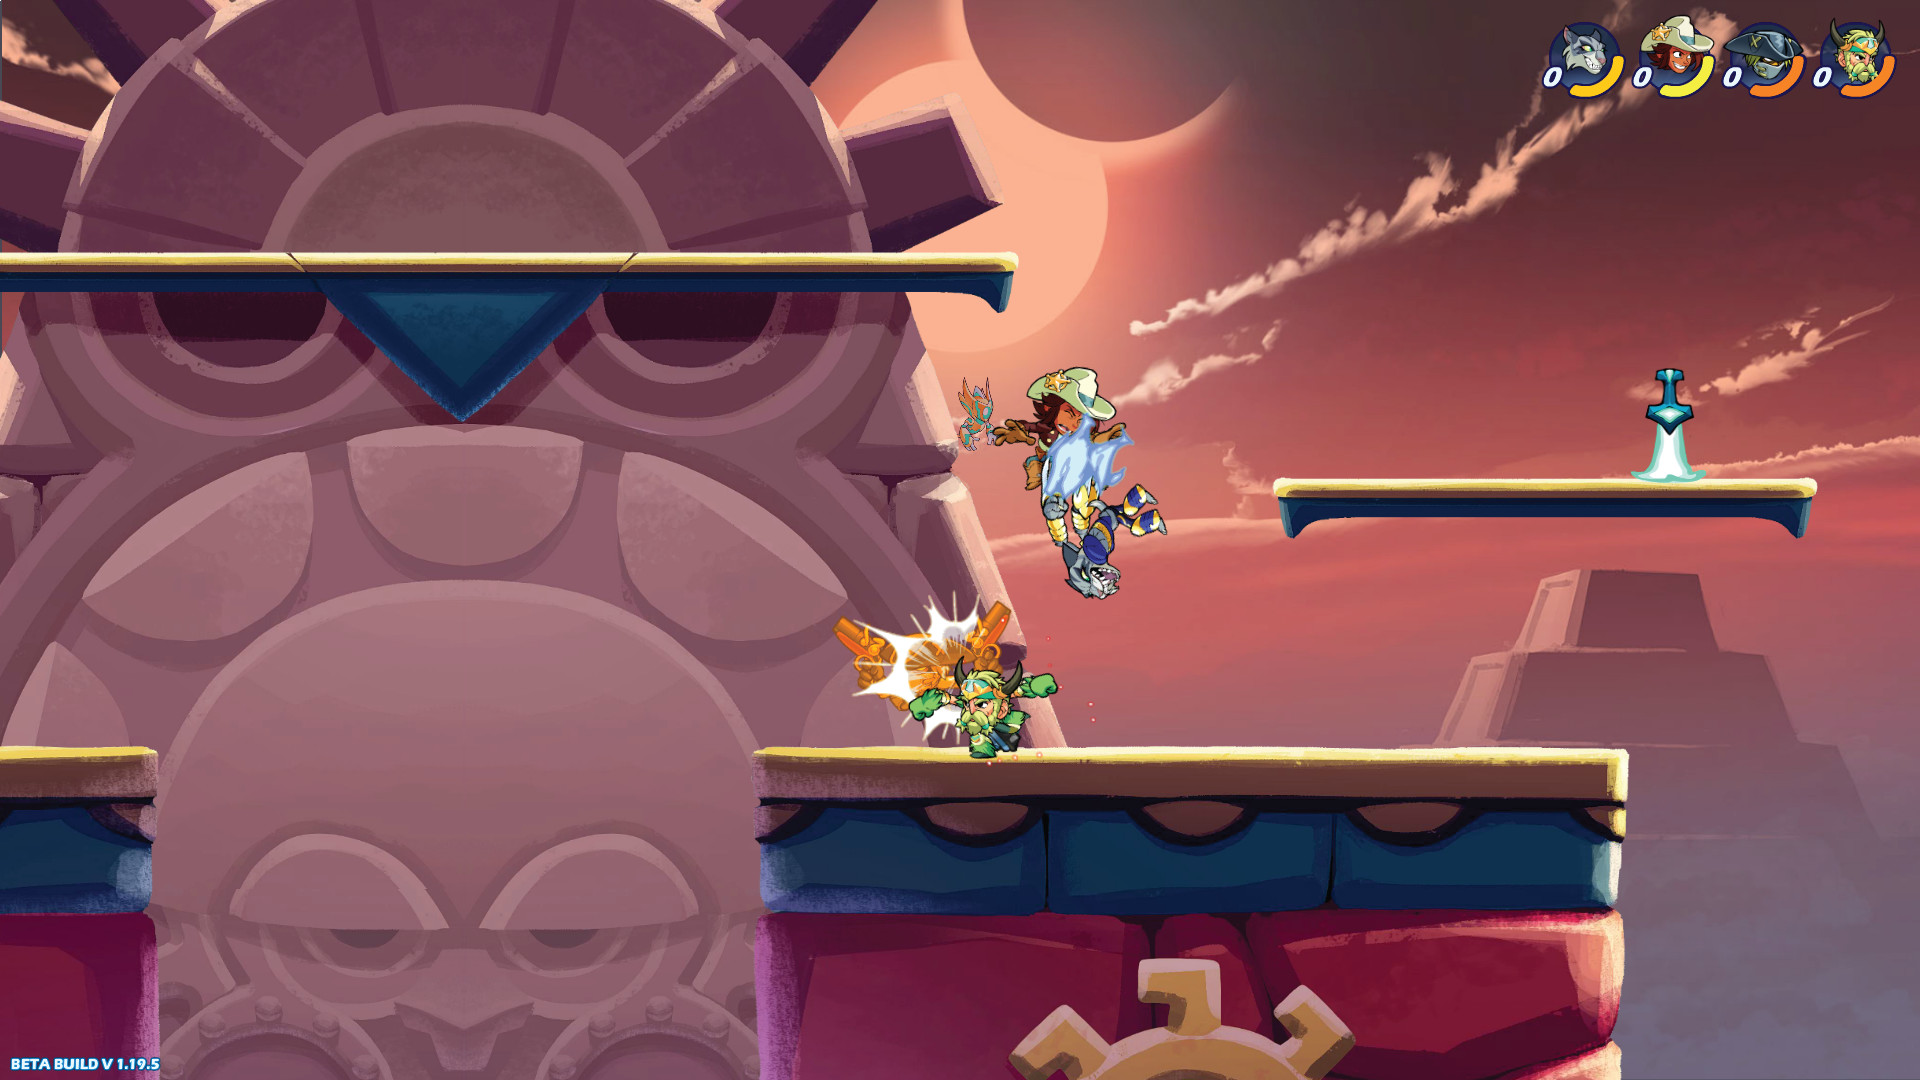 2D Fighter Brawlhalla Will Offer Cross Play to PS4 & PC